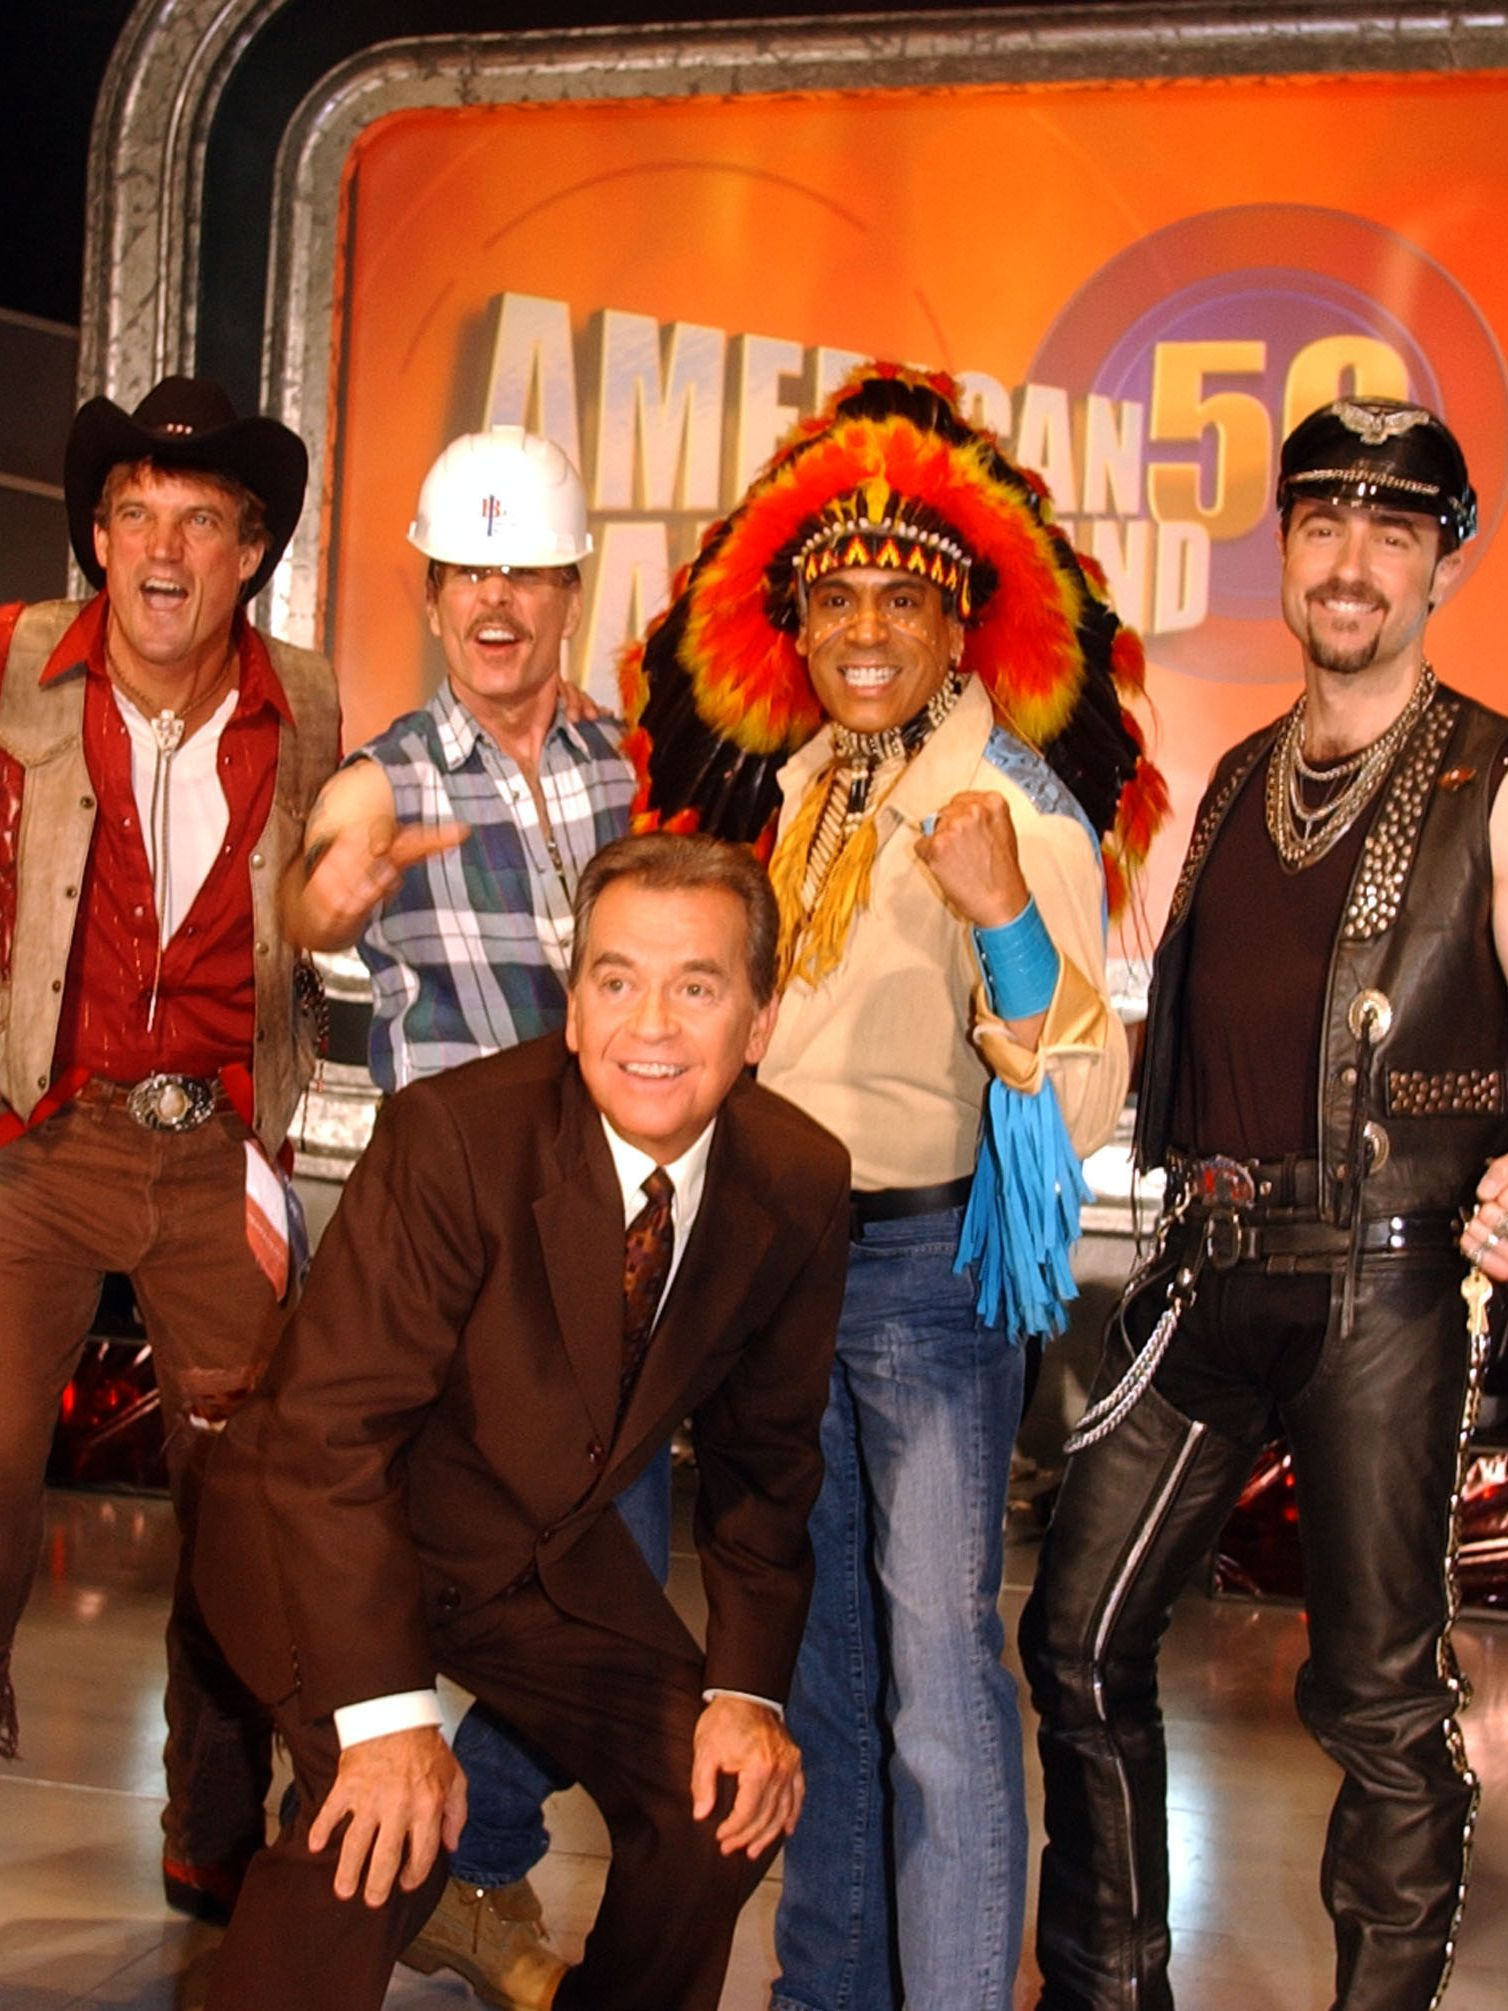 """Clark poses with """"The Villiage People"""" at the taping of the 50th anniversary special of """"American Bandstand."""""""